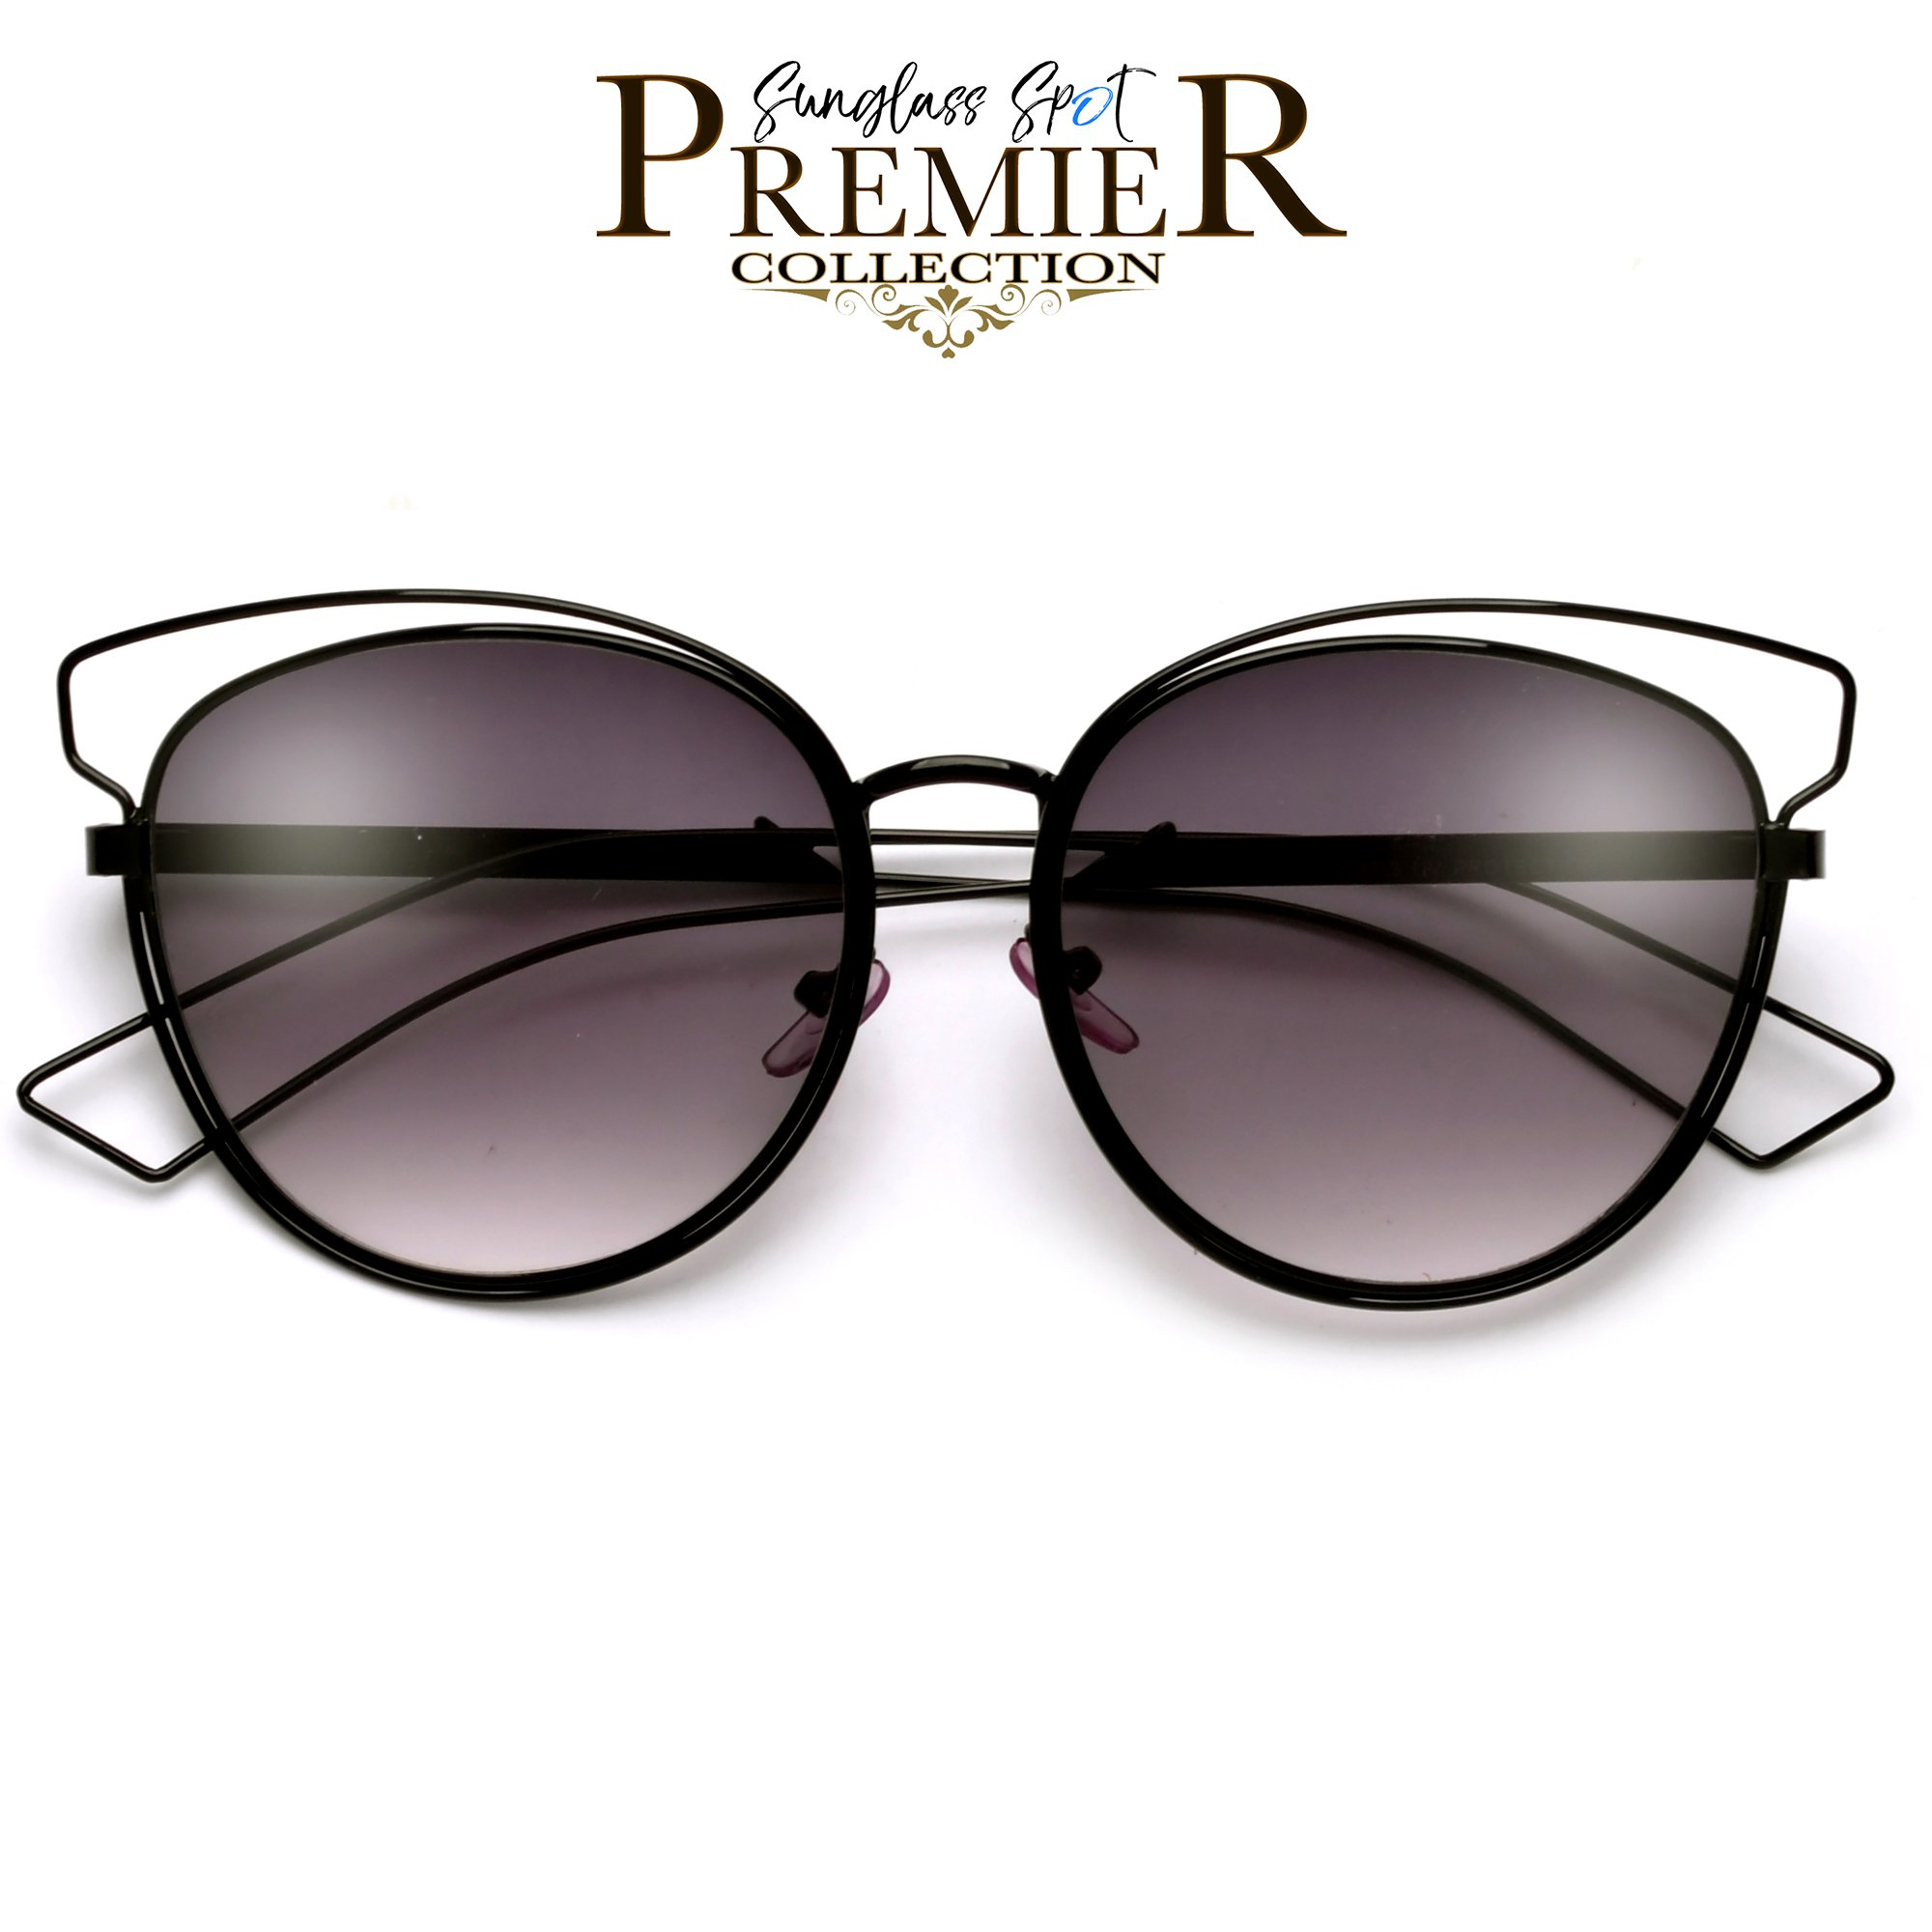 2000x2000 Premier Collection Thin Light Metal Wire Cat Eye Silhouette Ultra